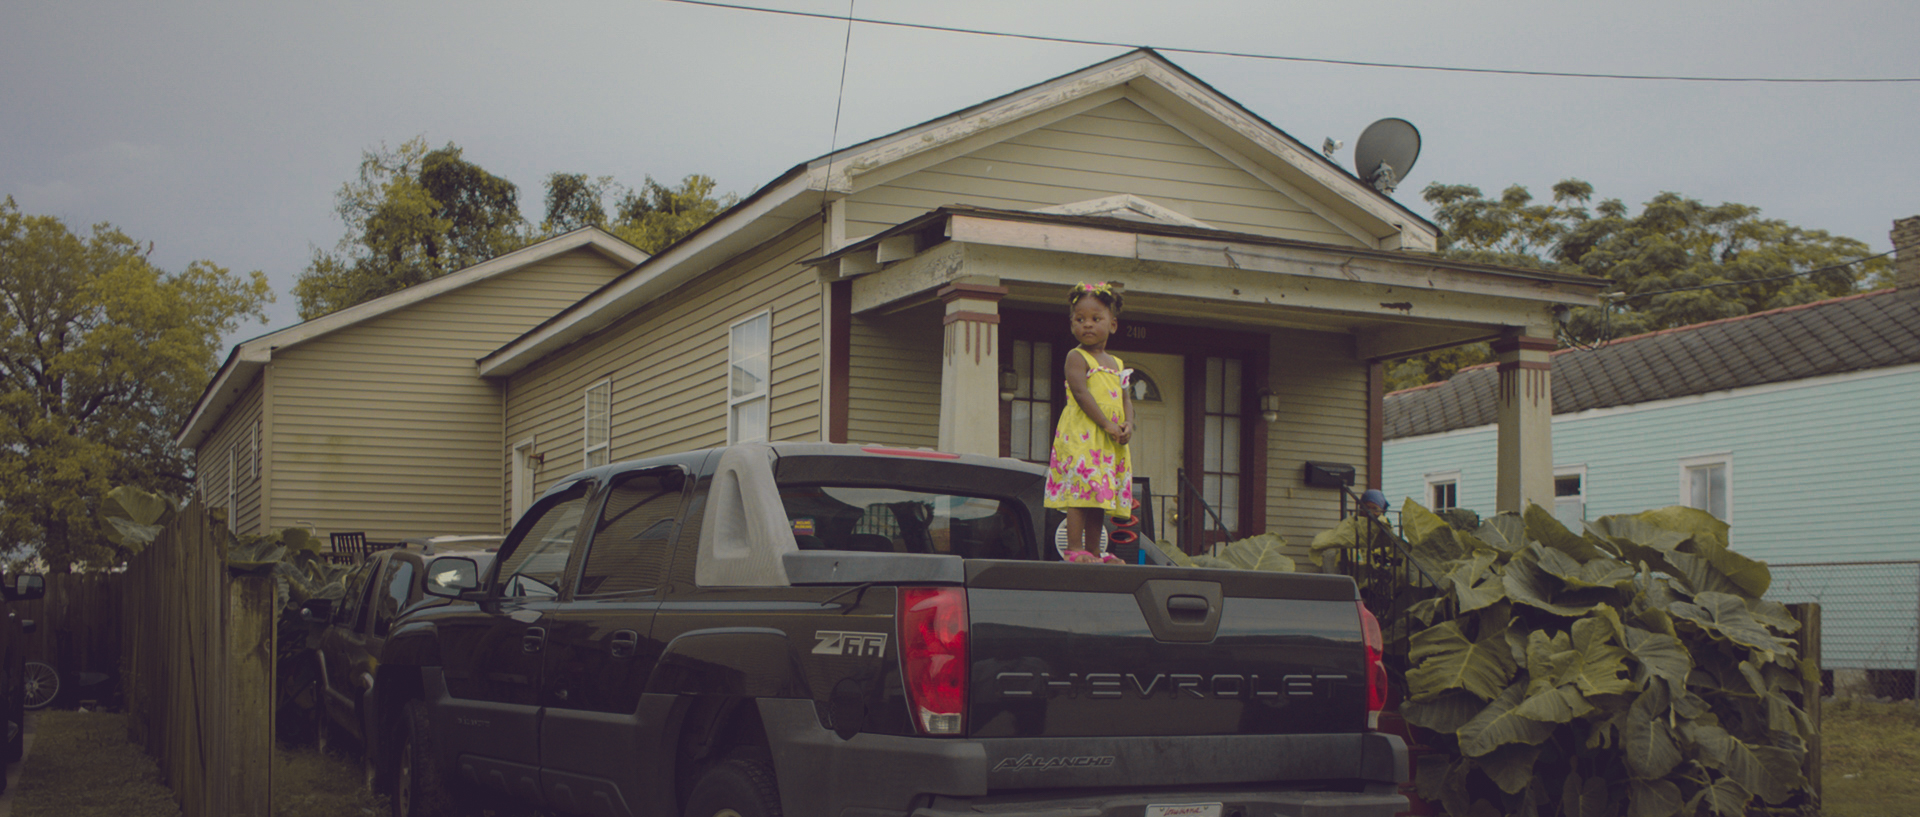 We had a big New Orleans parade setup in the downtown area. Afterwards we went out looking for New Orleans 'flavor', and found this girl who fit into a separate opening about how music brings together people, no matter where they're from, and starting when they're a baby. This little girl is standing on the back of this pickup with a speaker next to her.